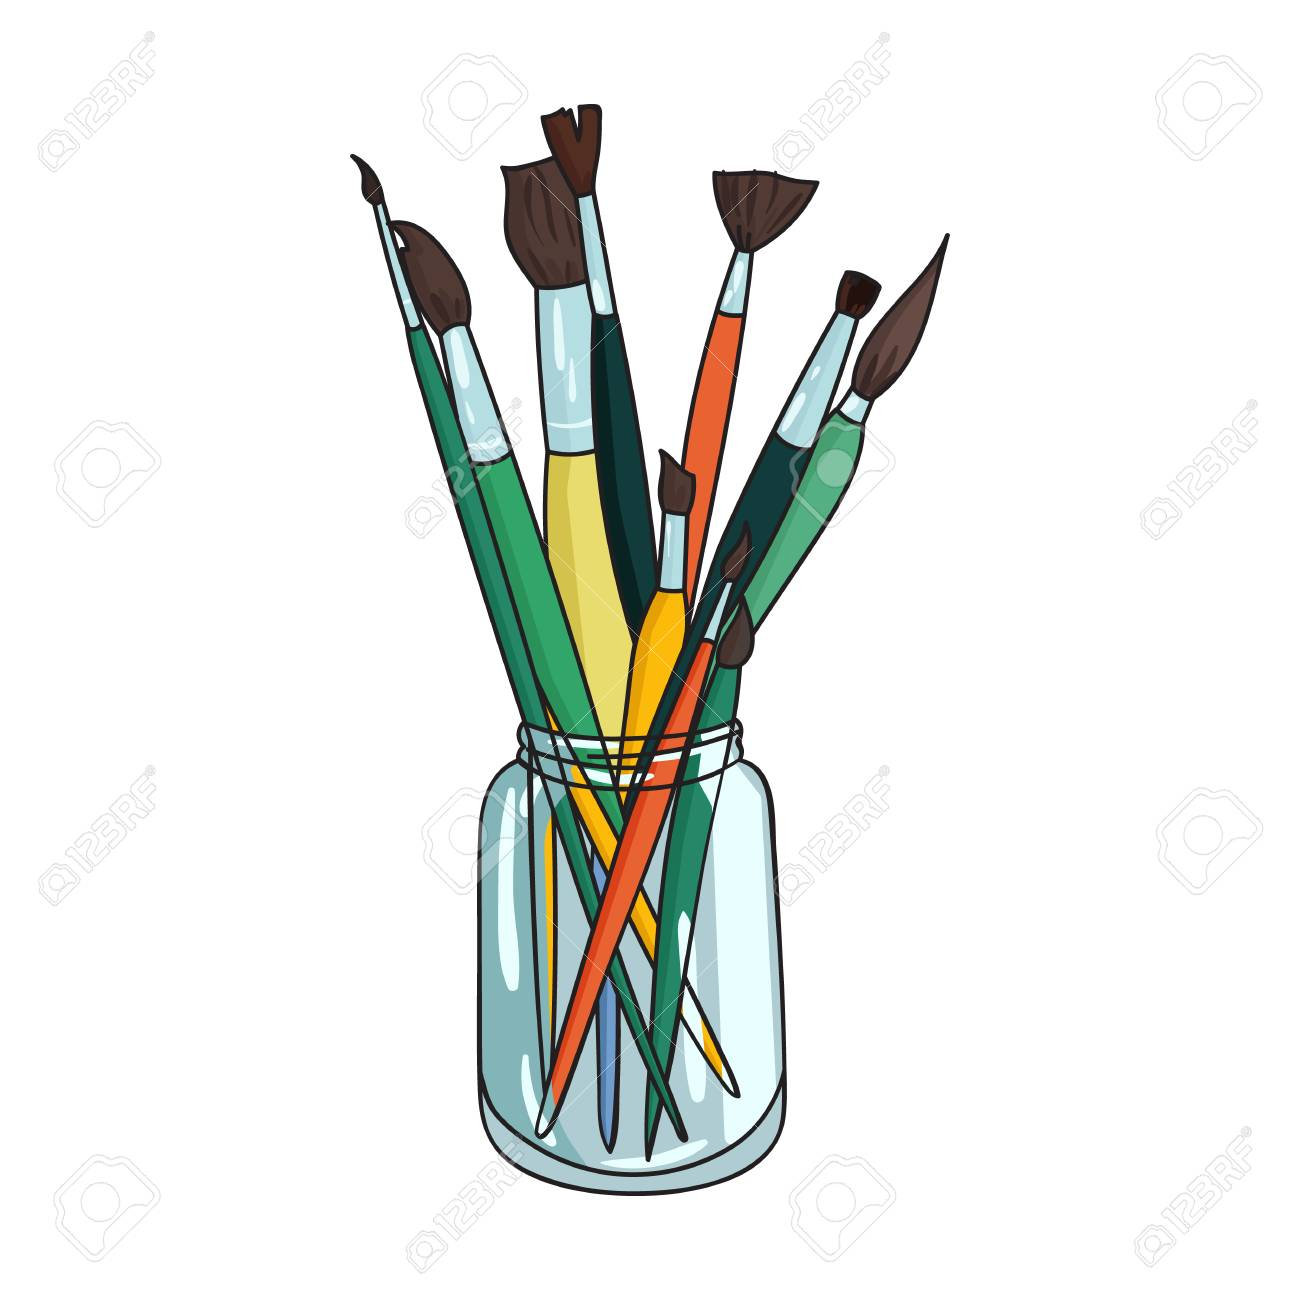 paintbrushes for painting in the jar icon in cartoon style isolated rh 123rf com cartoon paint brush black cartoon paint brush photoshop